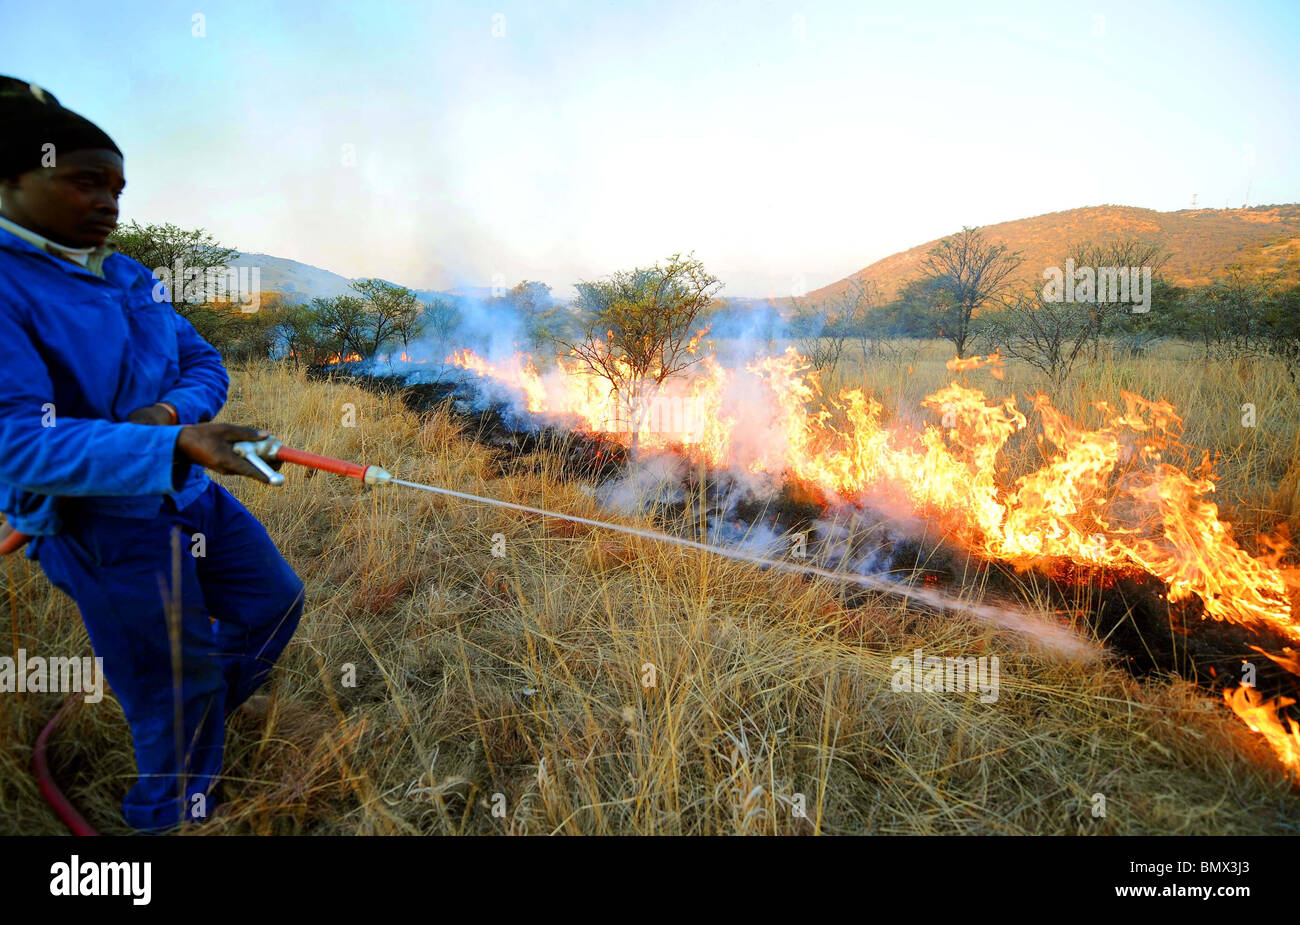 RANCH WORKERS CREAT FIREBREAKS 2010 FIFA WORLD CUP SOUTH AFRI KARMA RANCH  SOUTH AFRICA 21 June 2010 - Stock Image